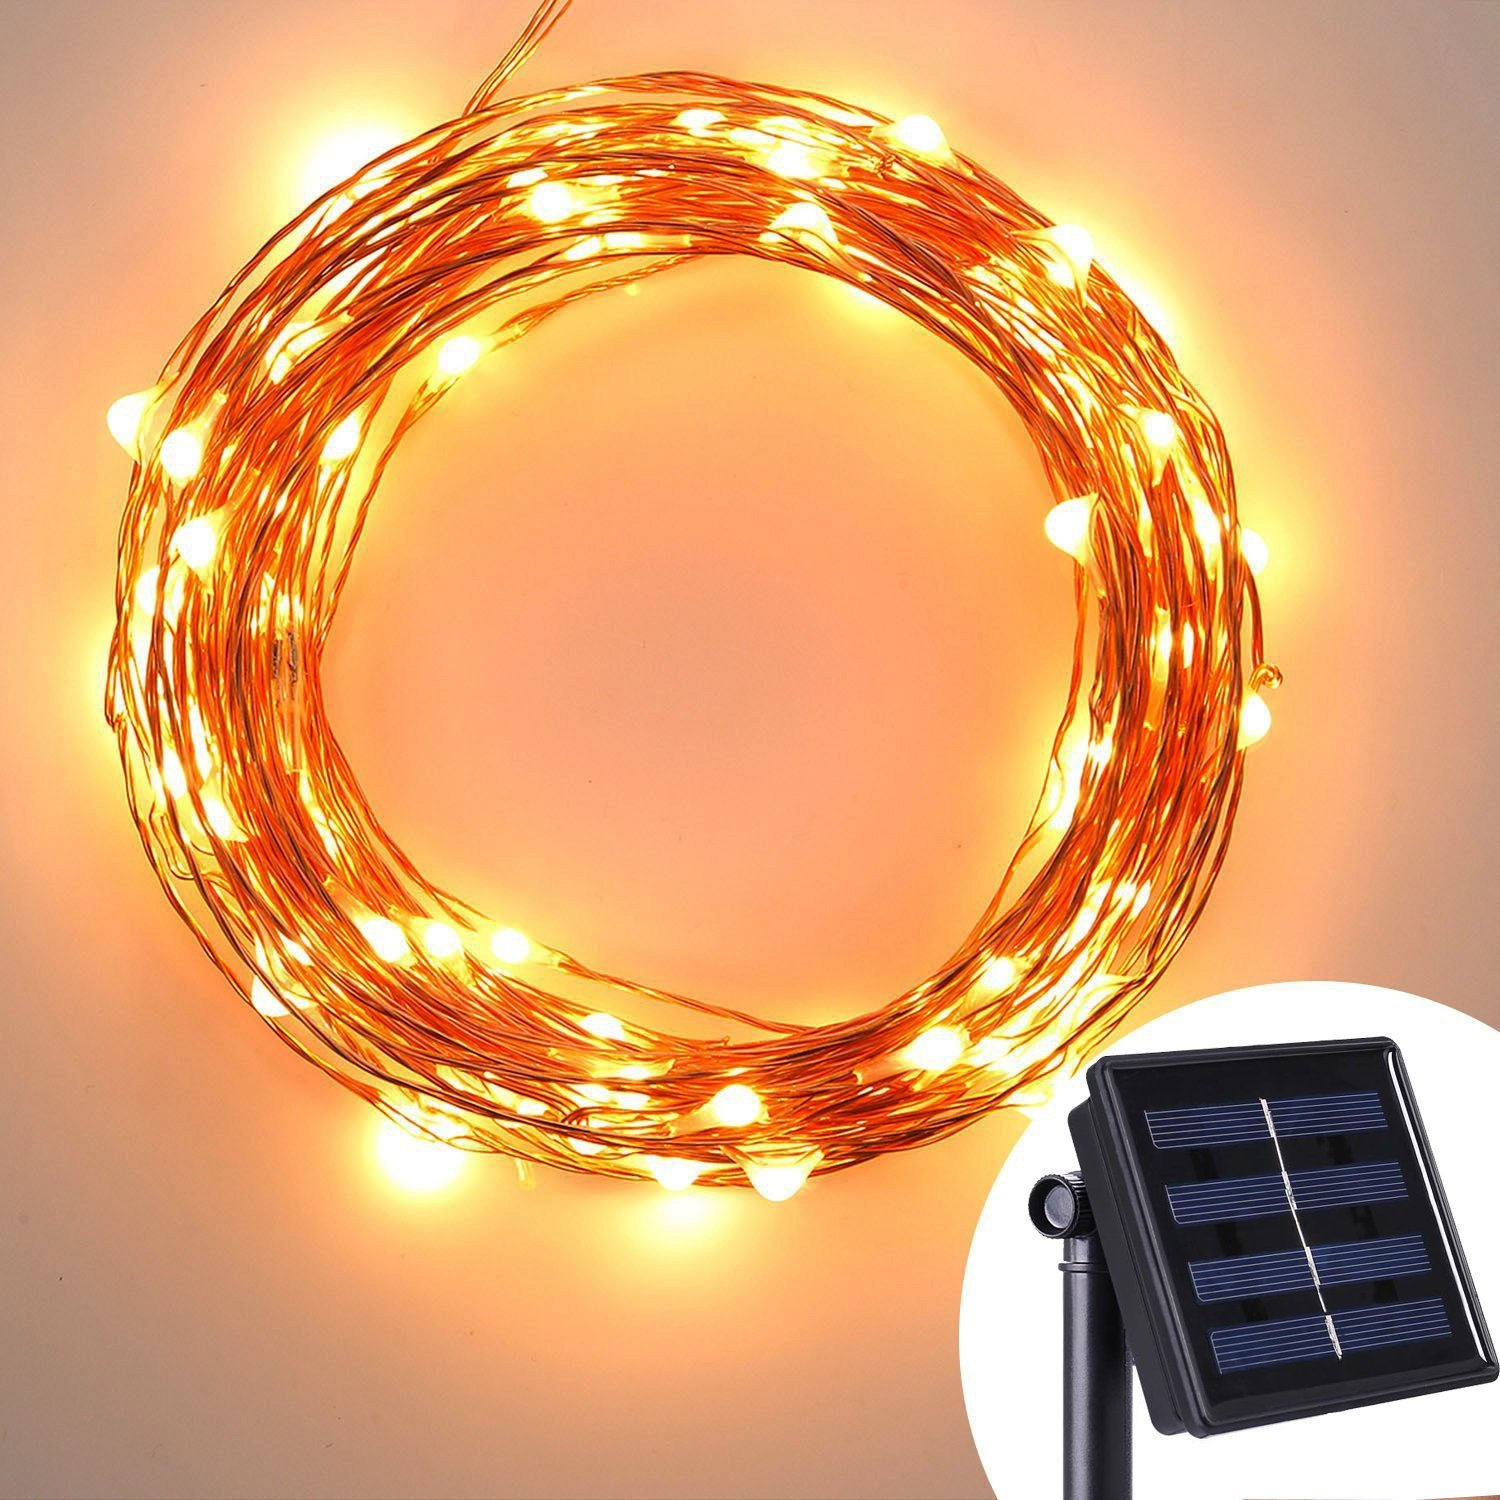 Micro Led String Lights Bendable Wire